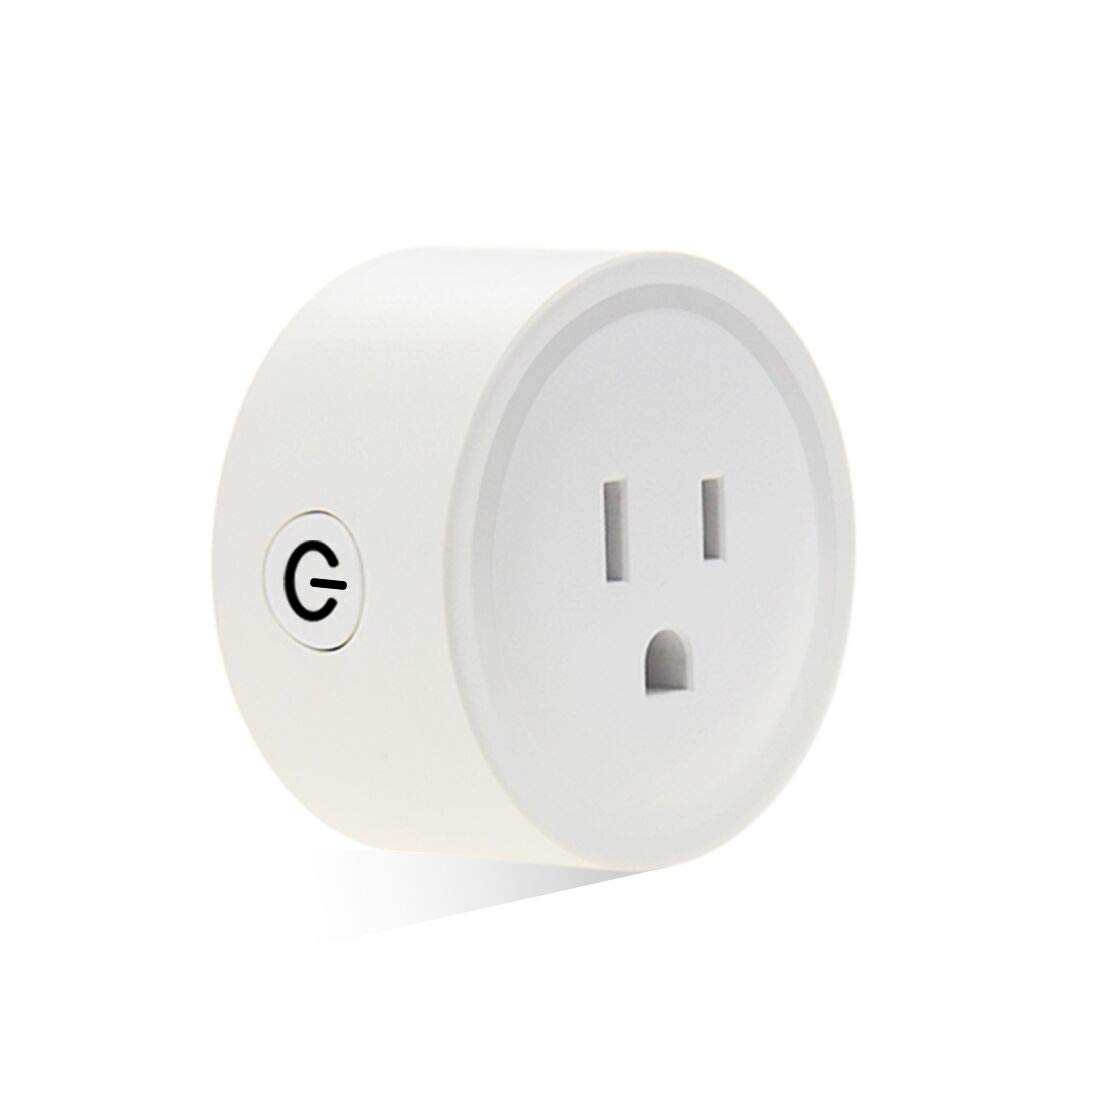 Smart Plug,FRANKEVER Wi-Fi Smart Mini Sockets Outlet Compatible Alexa Google Home Remote Control Your Devices with Timing Function from Anywhere,No Hub Required